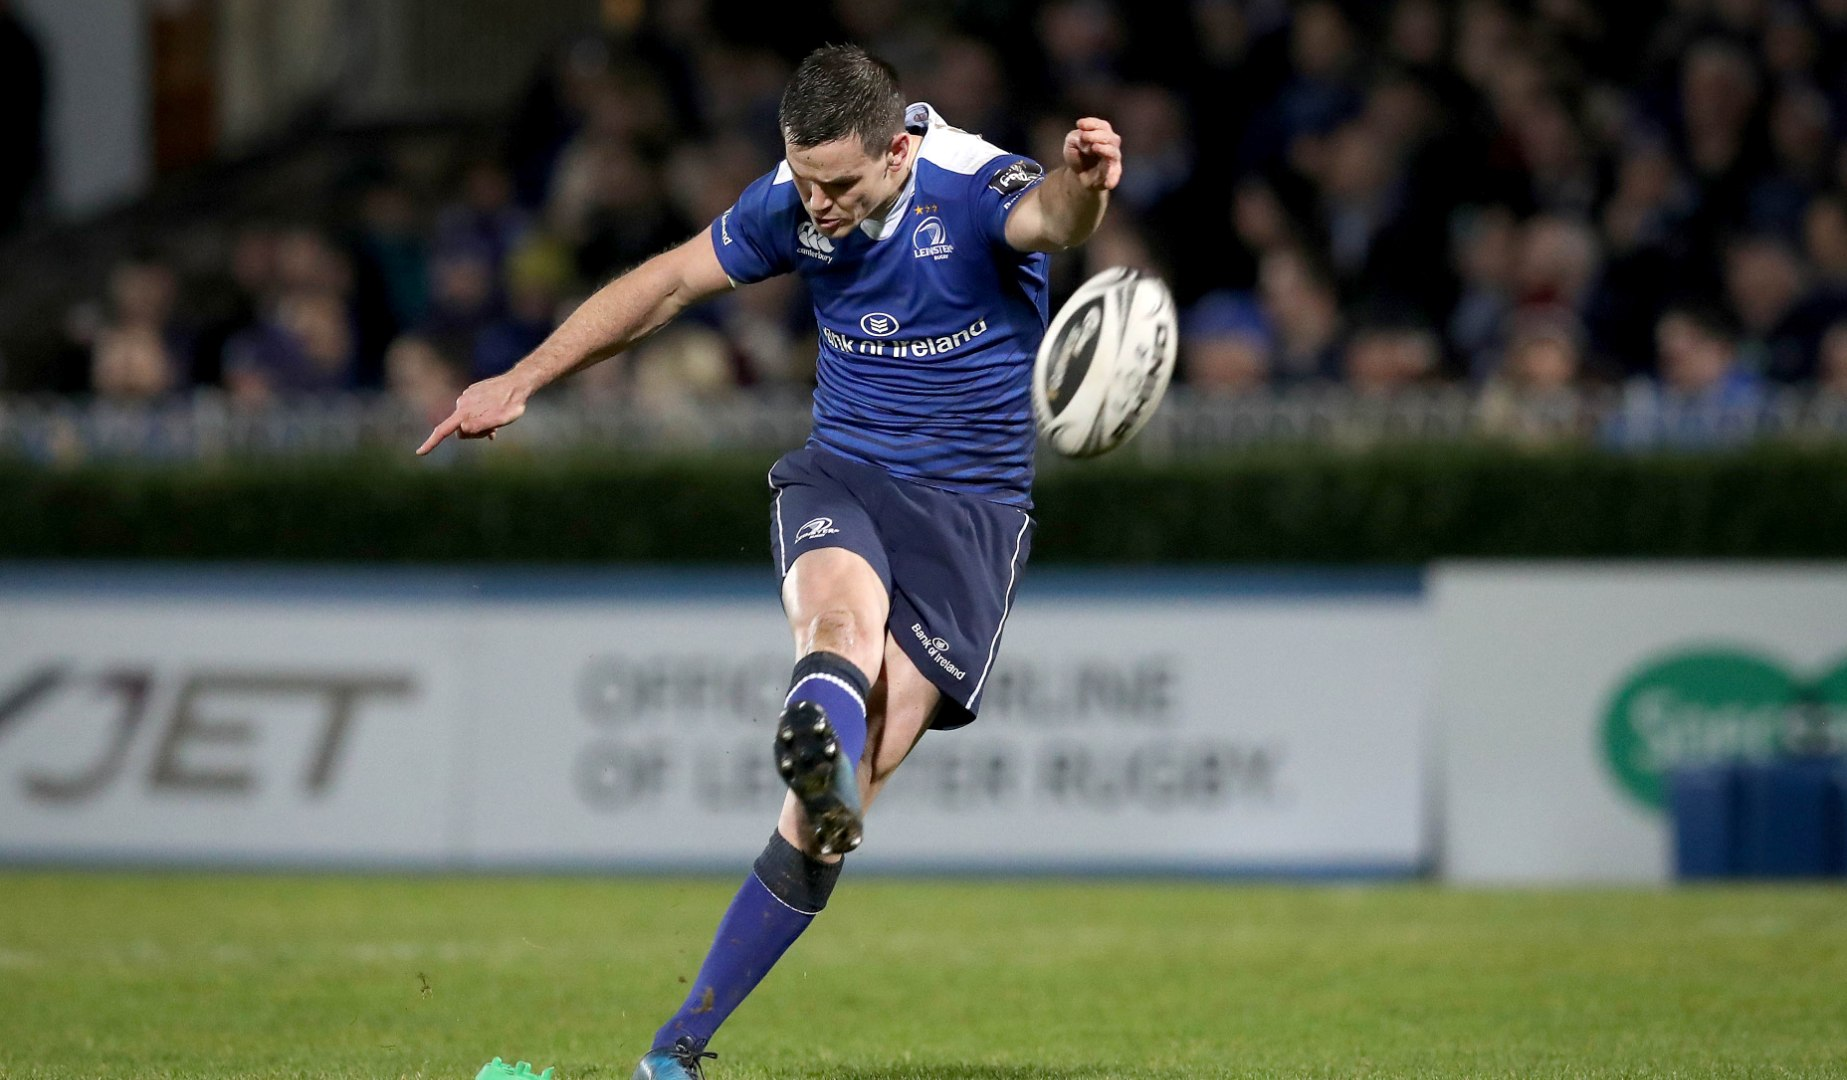 LionsWatch: Sexton shines from tee on return to Leinster action